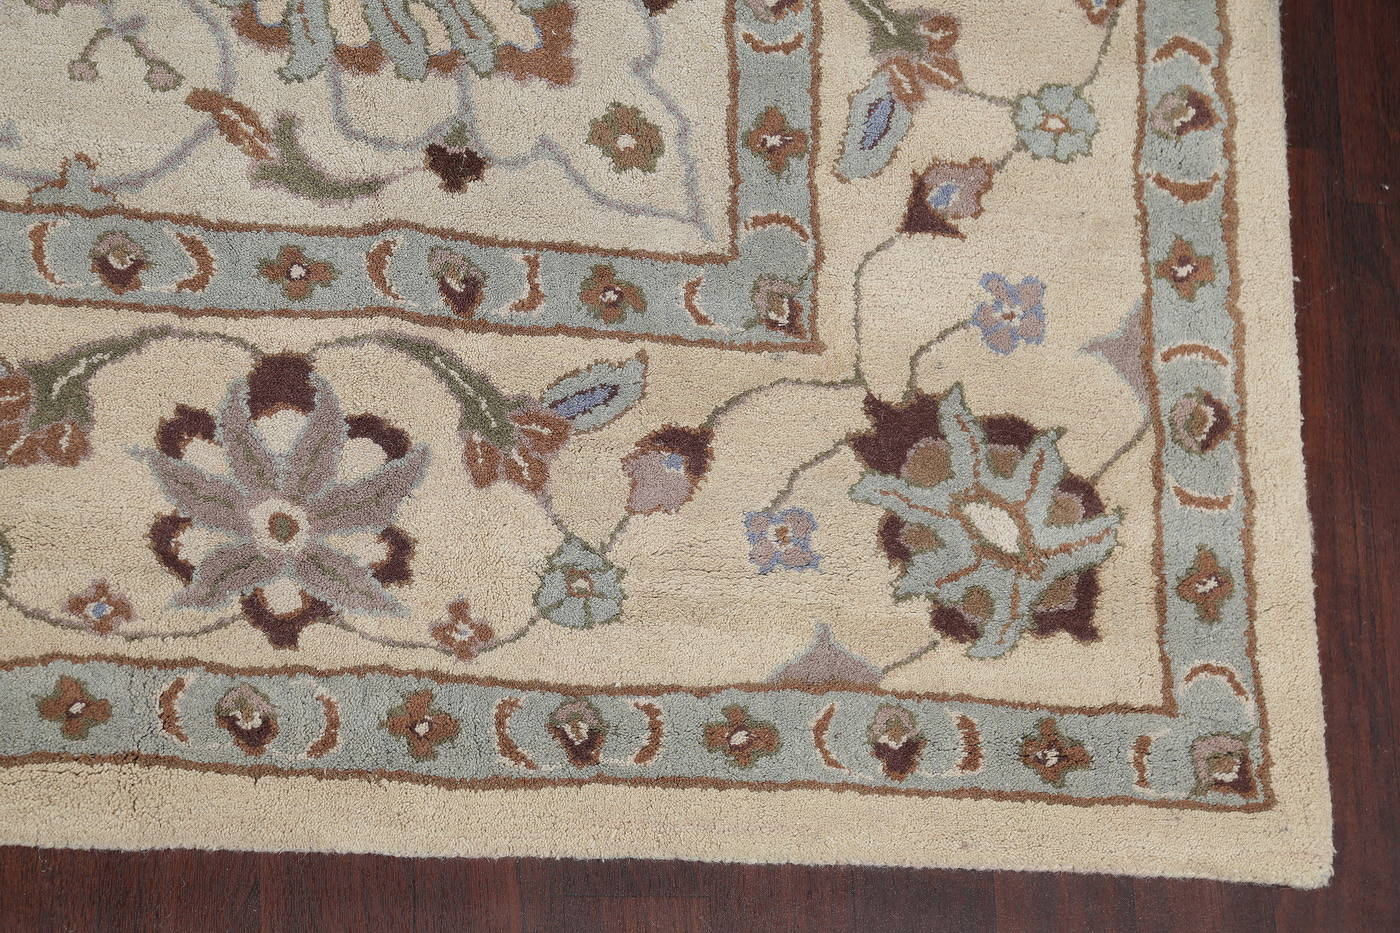 Hand-Tufted Traditional Floral Light Blue Oushak Oriental Area Rug Wool 11x16